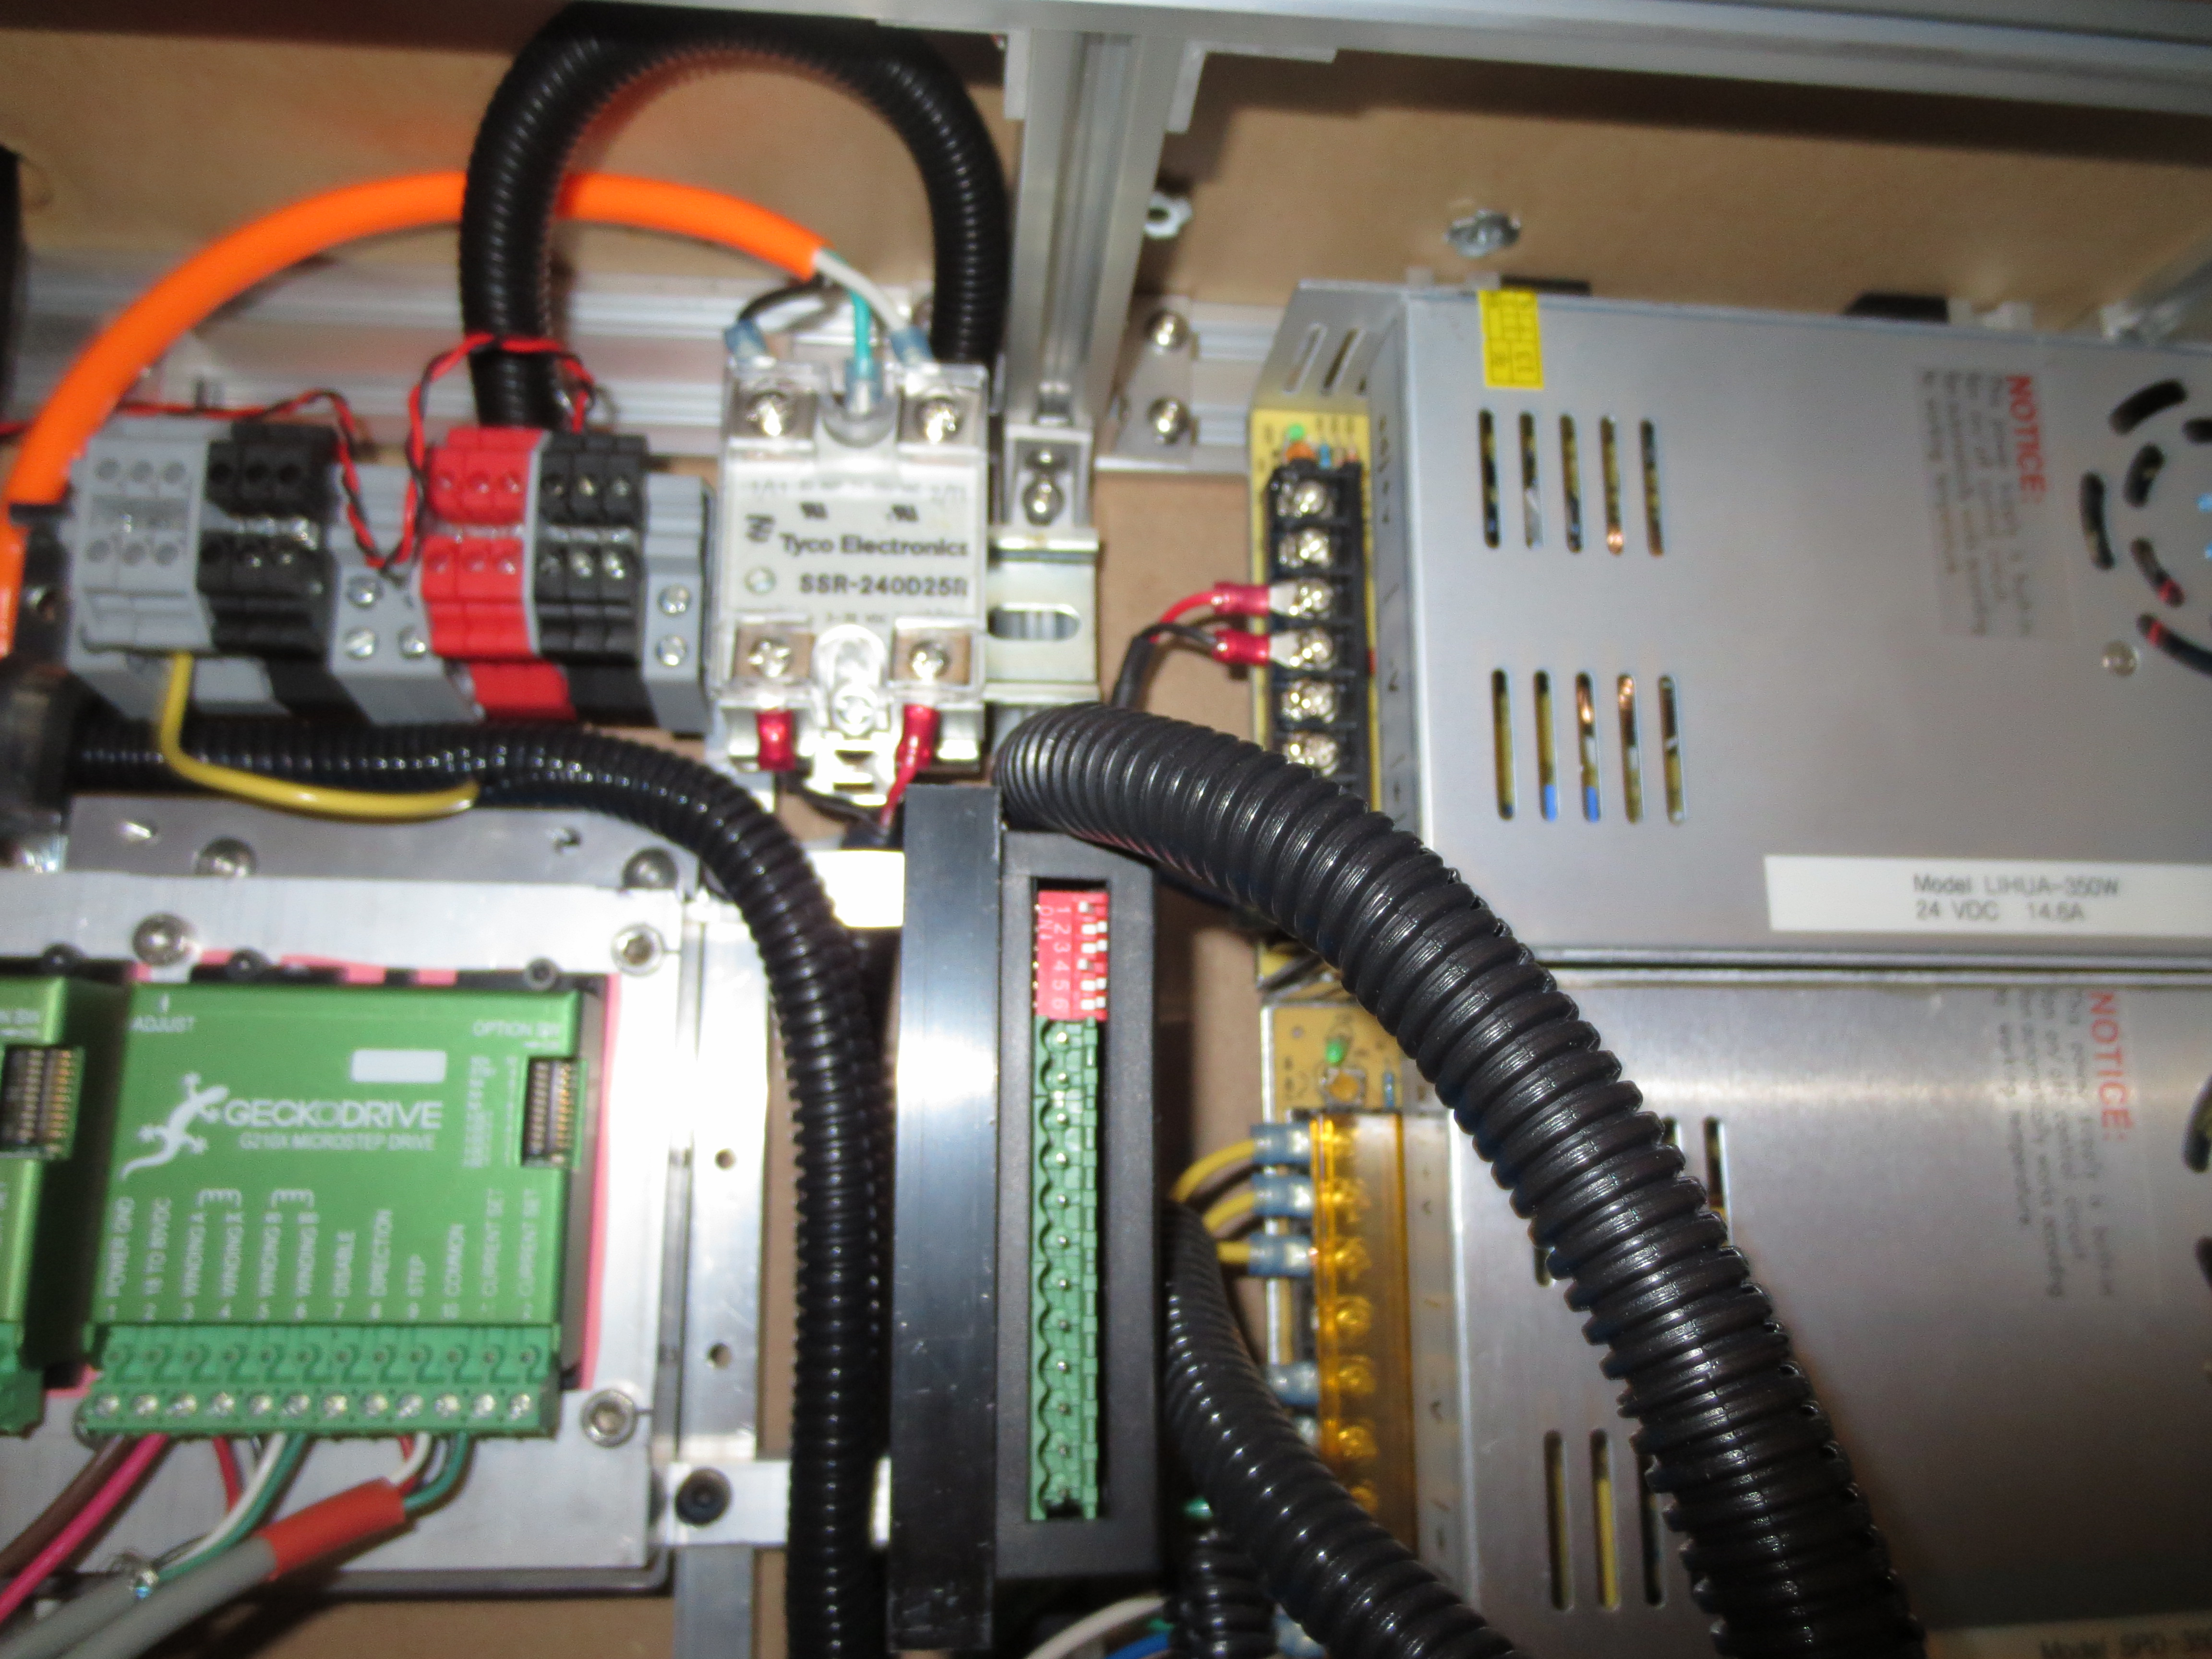 Co2 Laser Controllers Electronics Similar Results 40w Power Supply Circuits To An Outlet On The Side Of Cutter So Any Commercial Pump Can Be Used Up 5 Amps Limited By Push Button Circuit Breakers